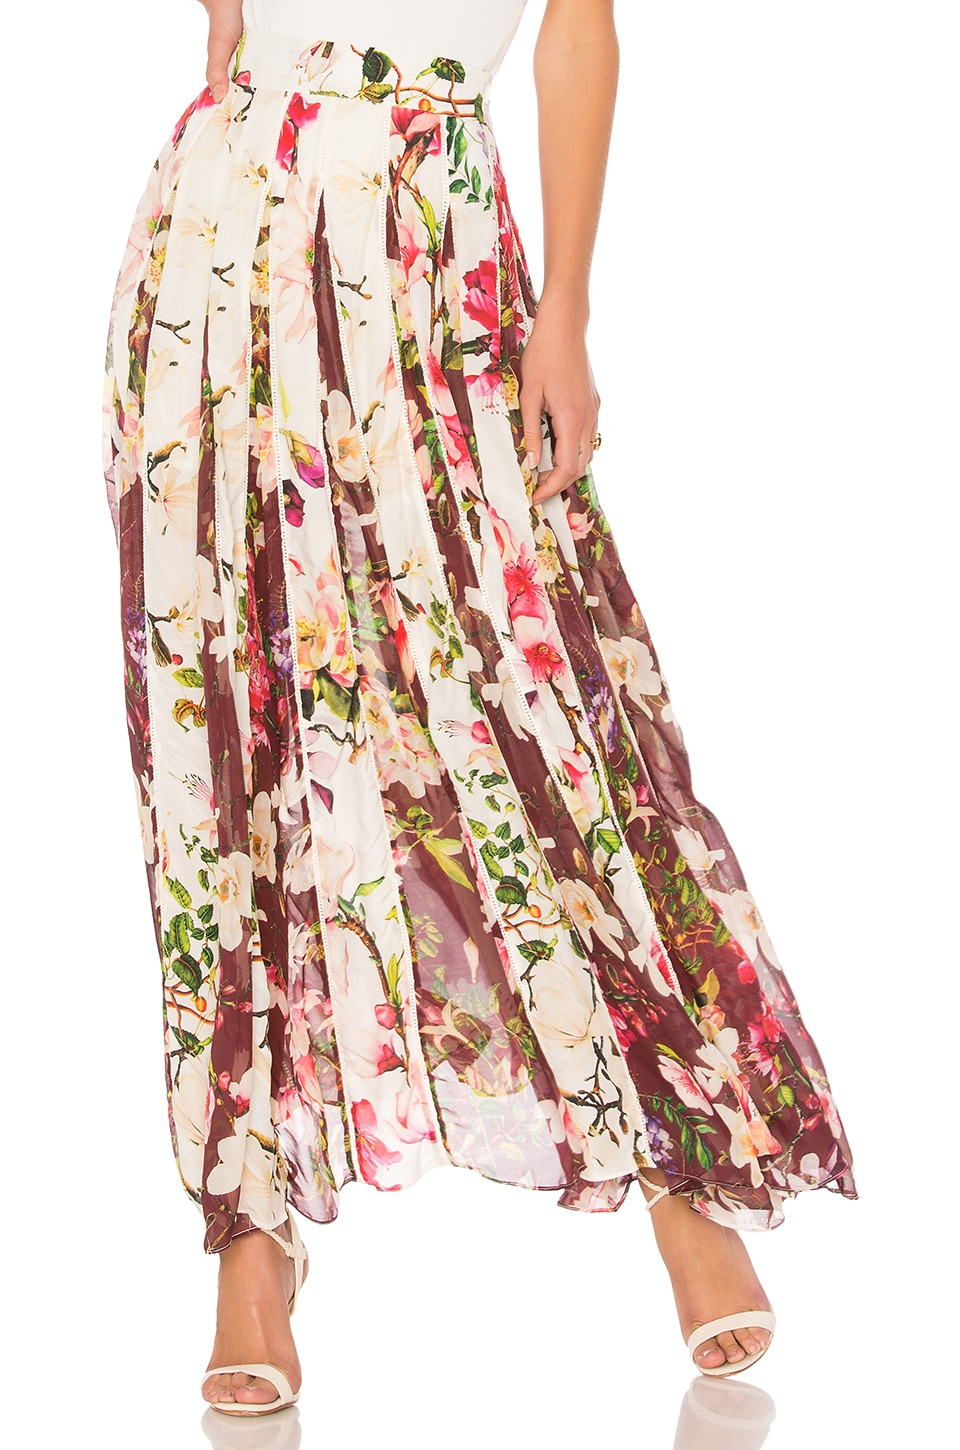 Floral Maxi Skirt by Rococo Sand